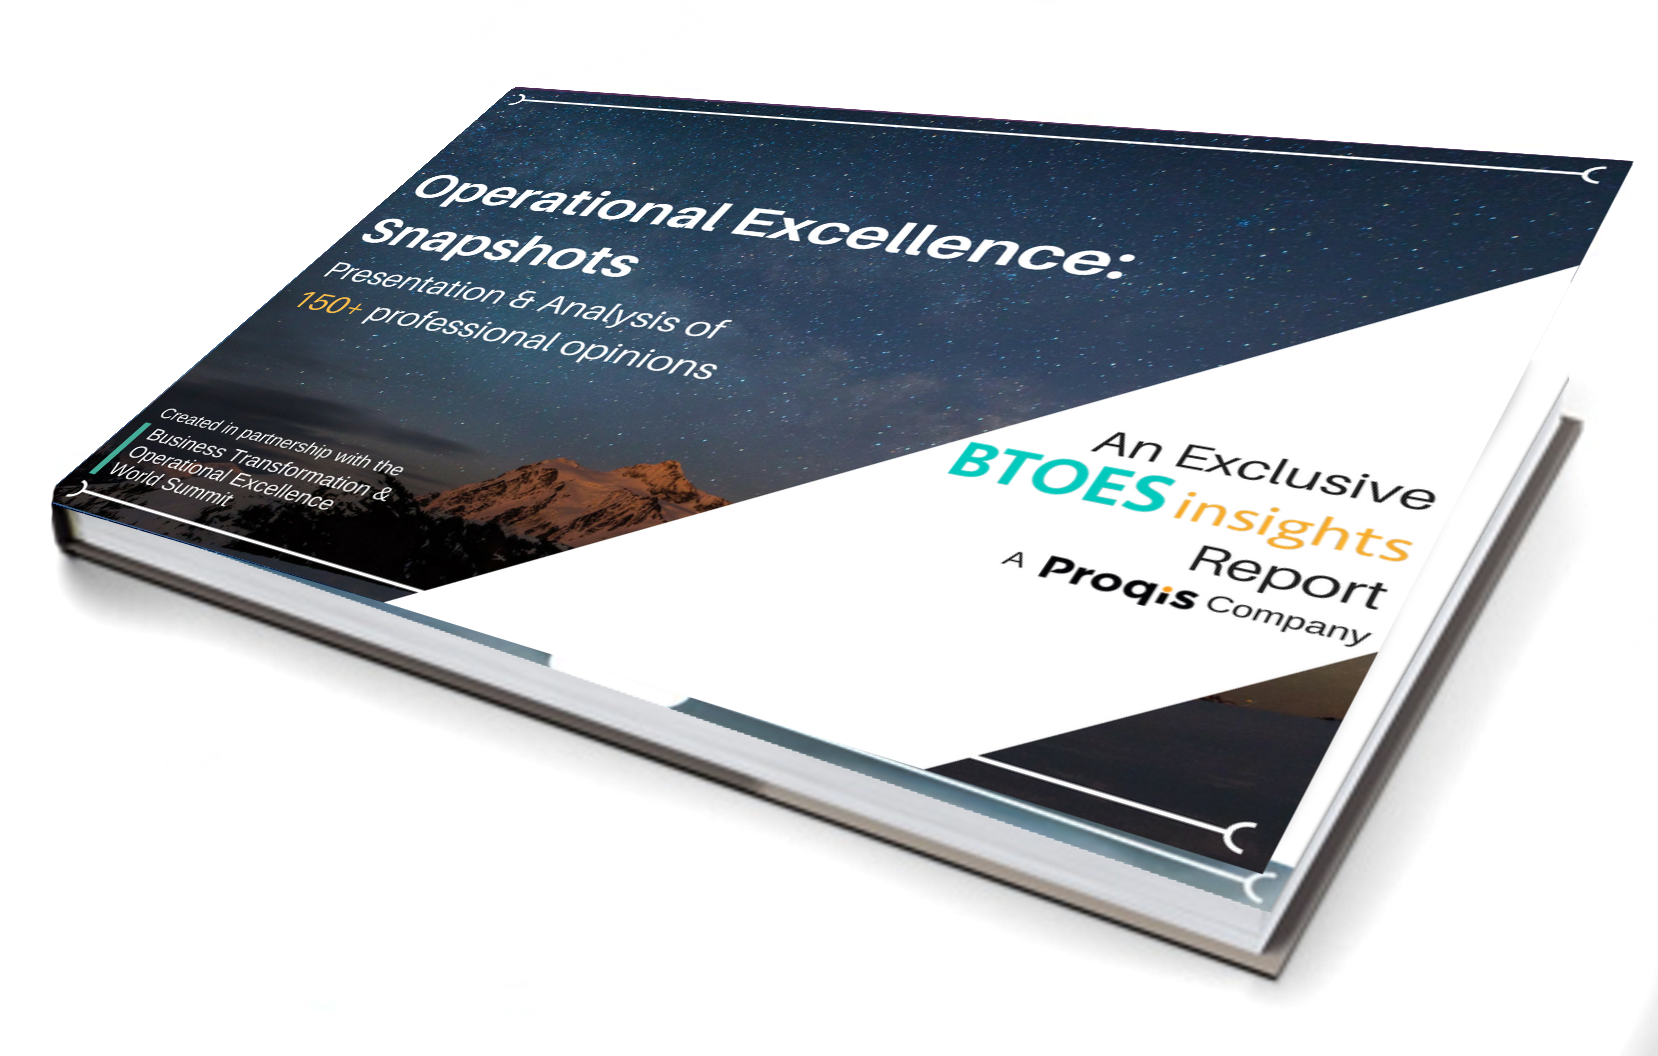 Operational Excellence: Snapshots Full Series